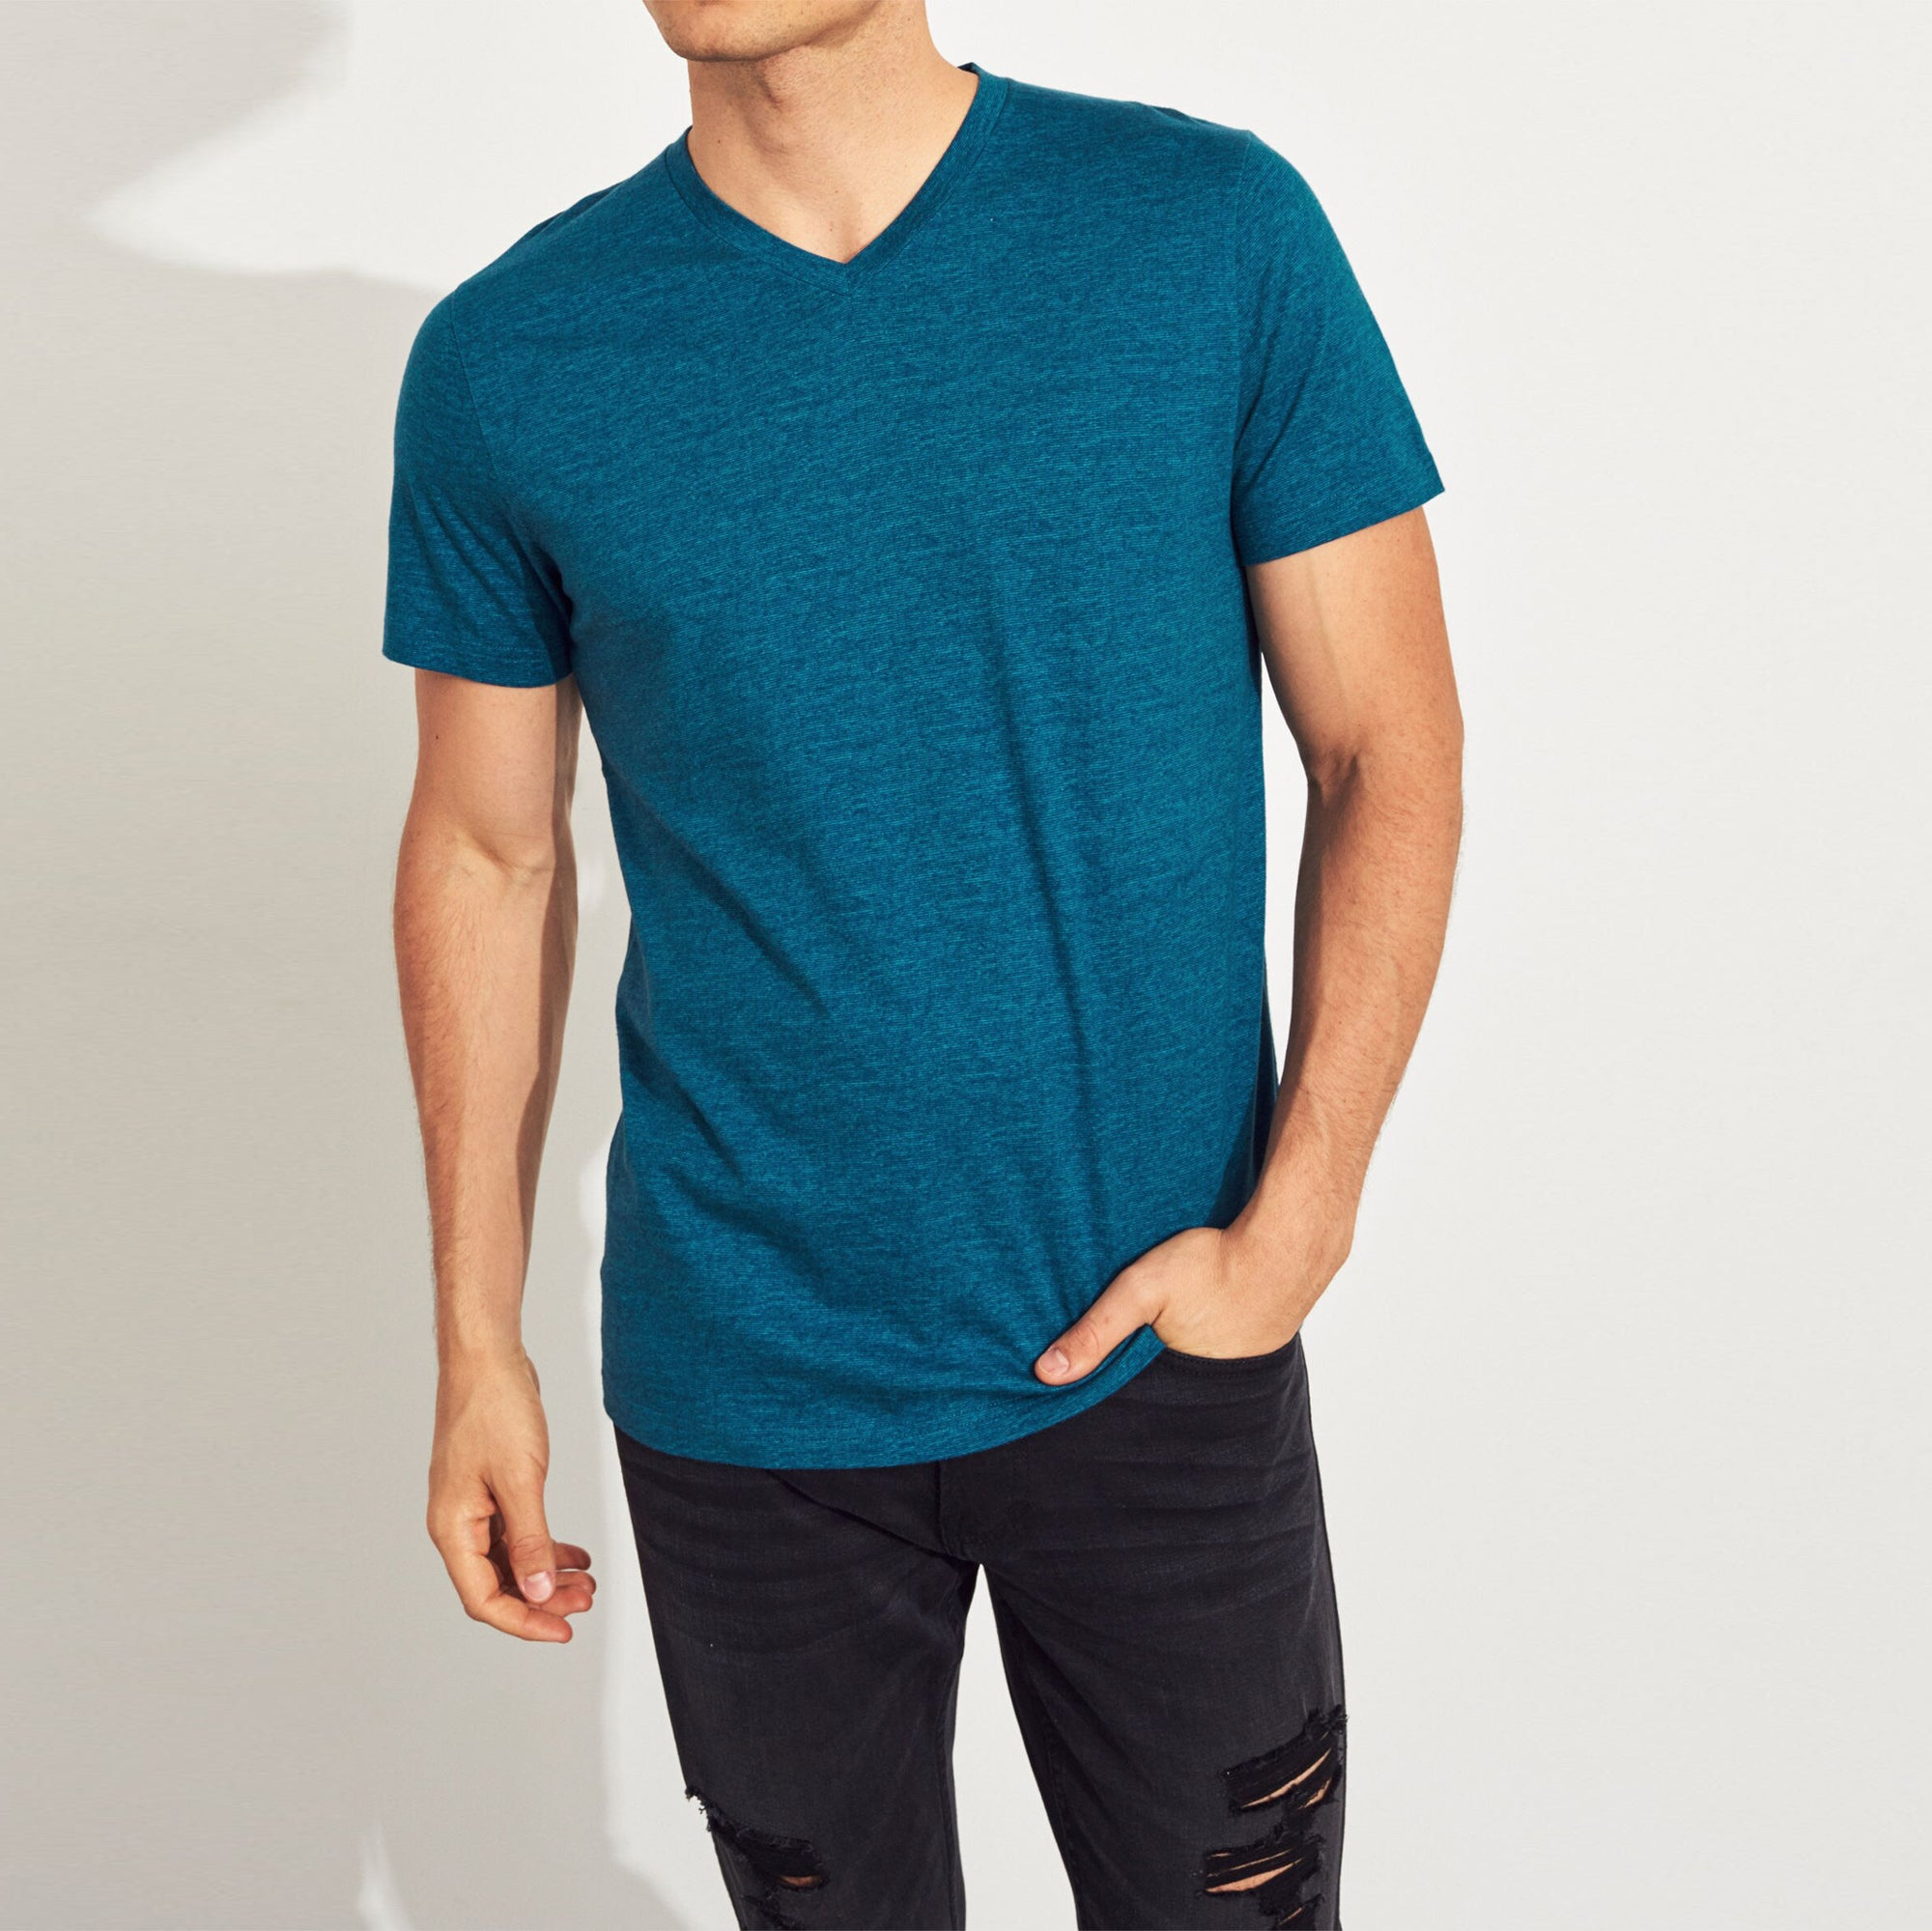 Beverly Hills V Neck Half Sleeve Tee Shirt For Men-NA9029